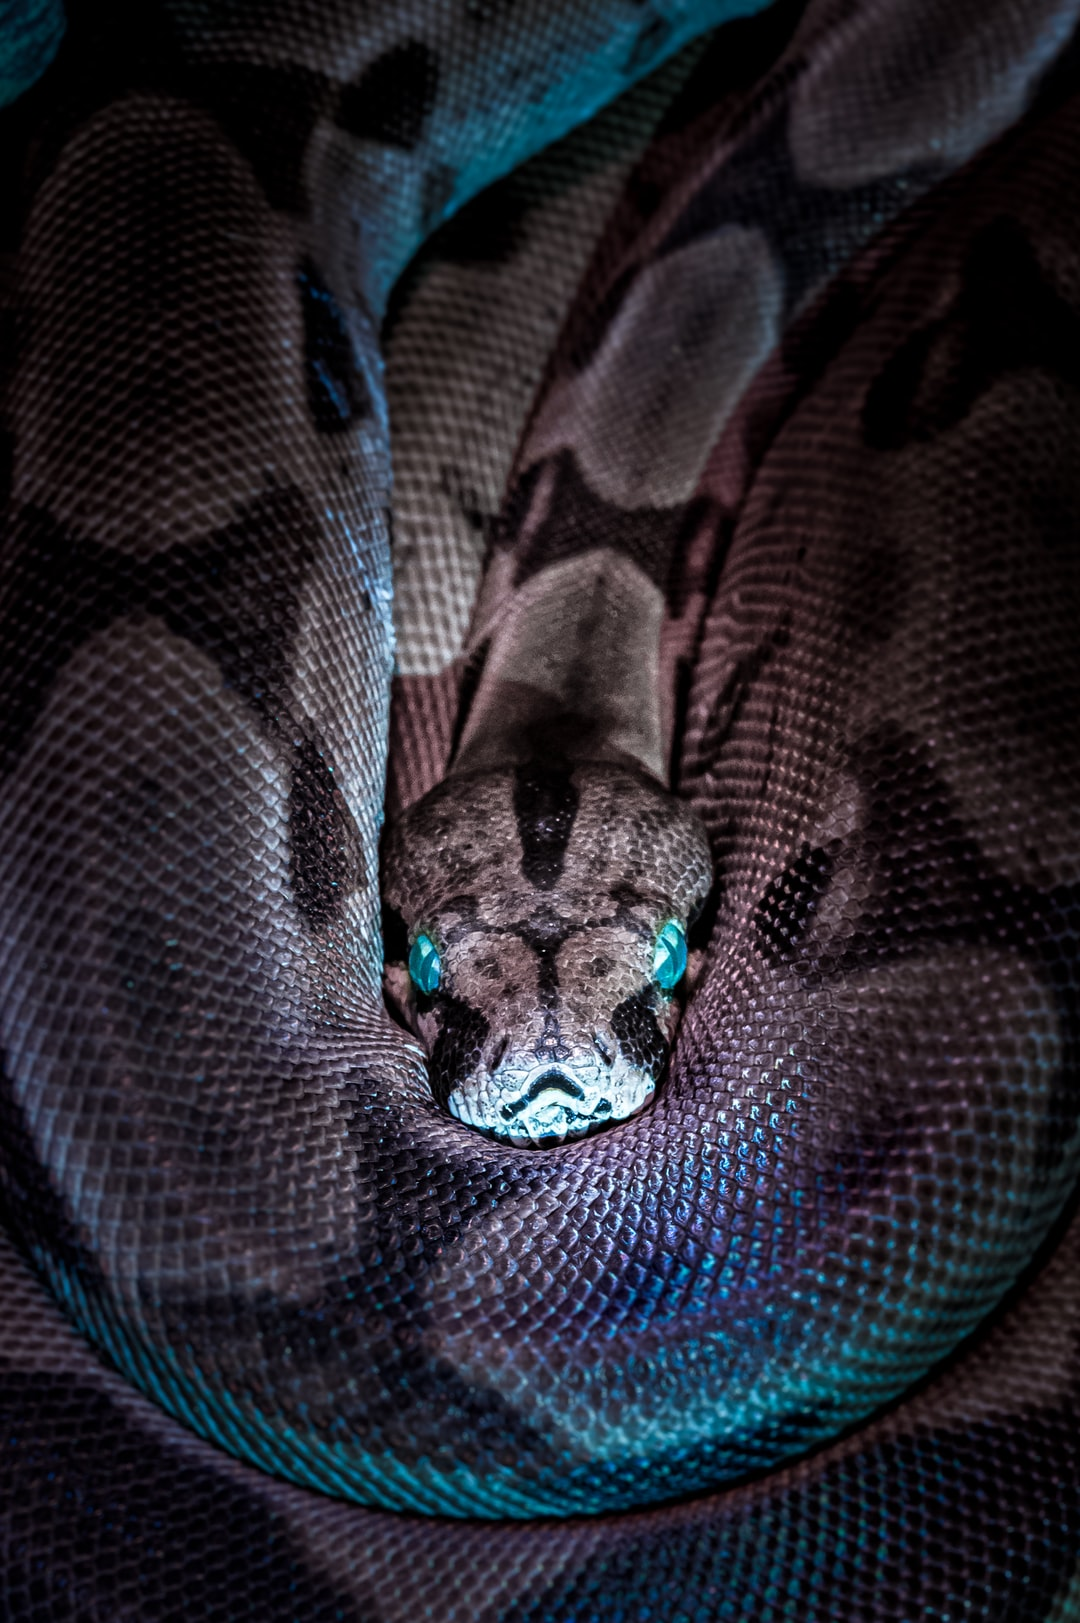 Wallpaper for iPhone - Boa Constrictor before the shedding